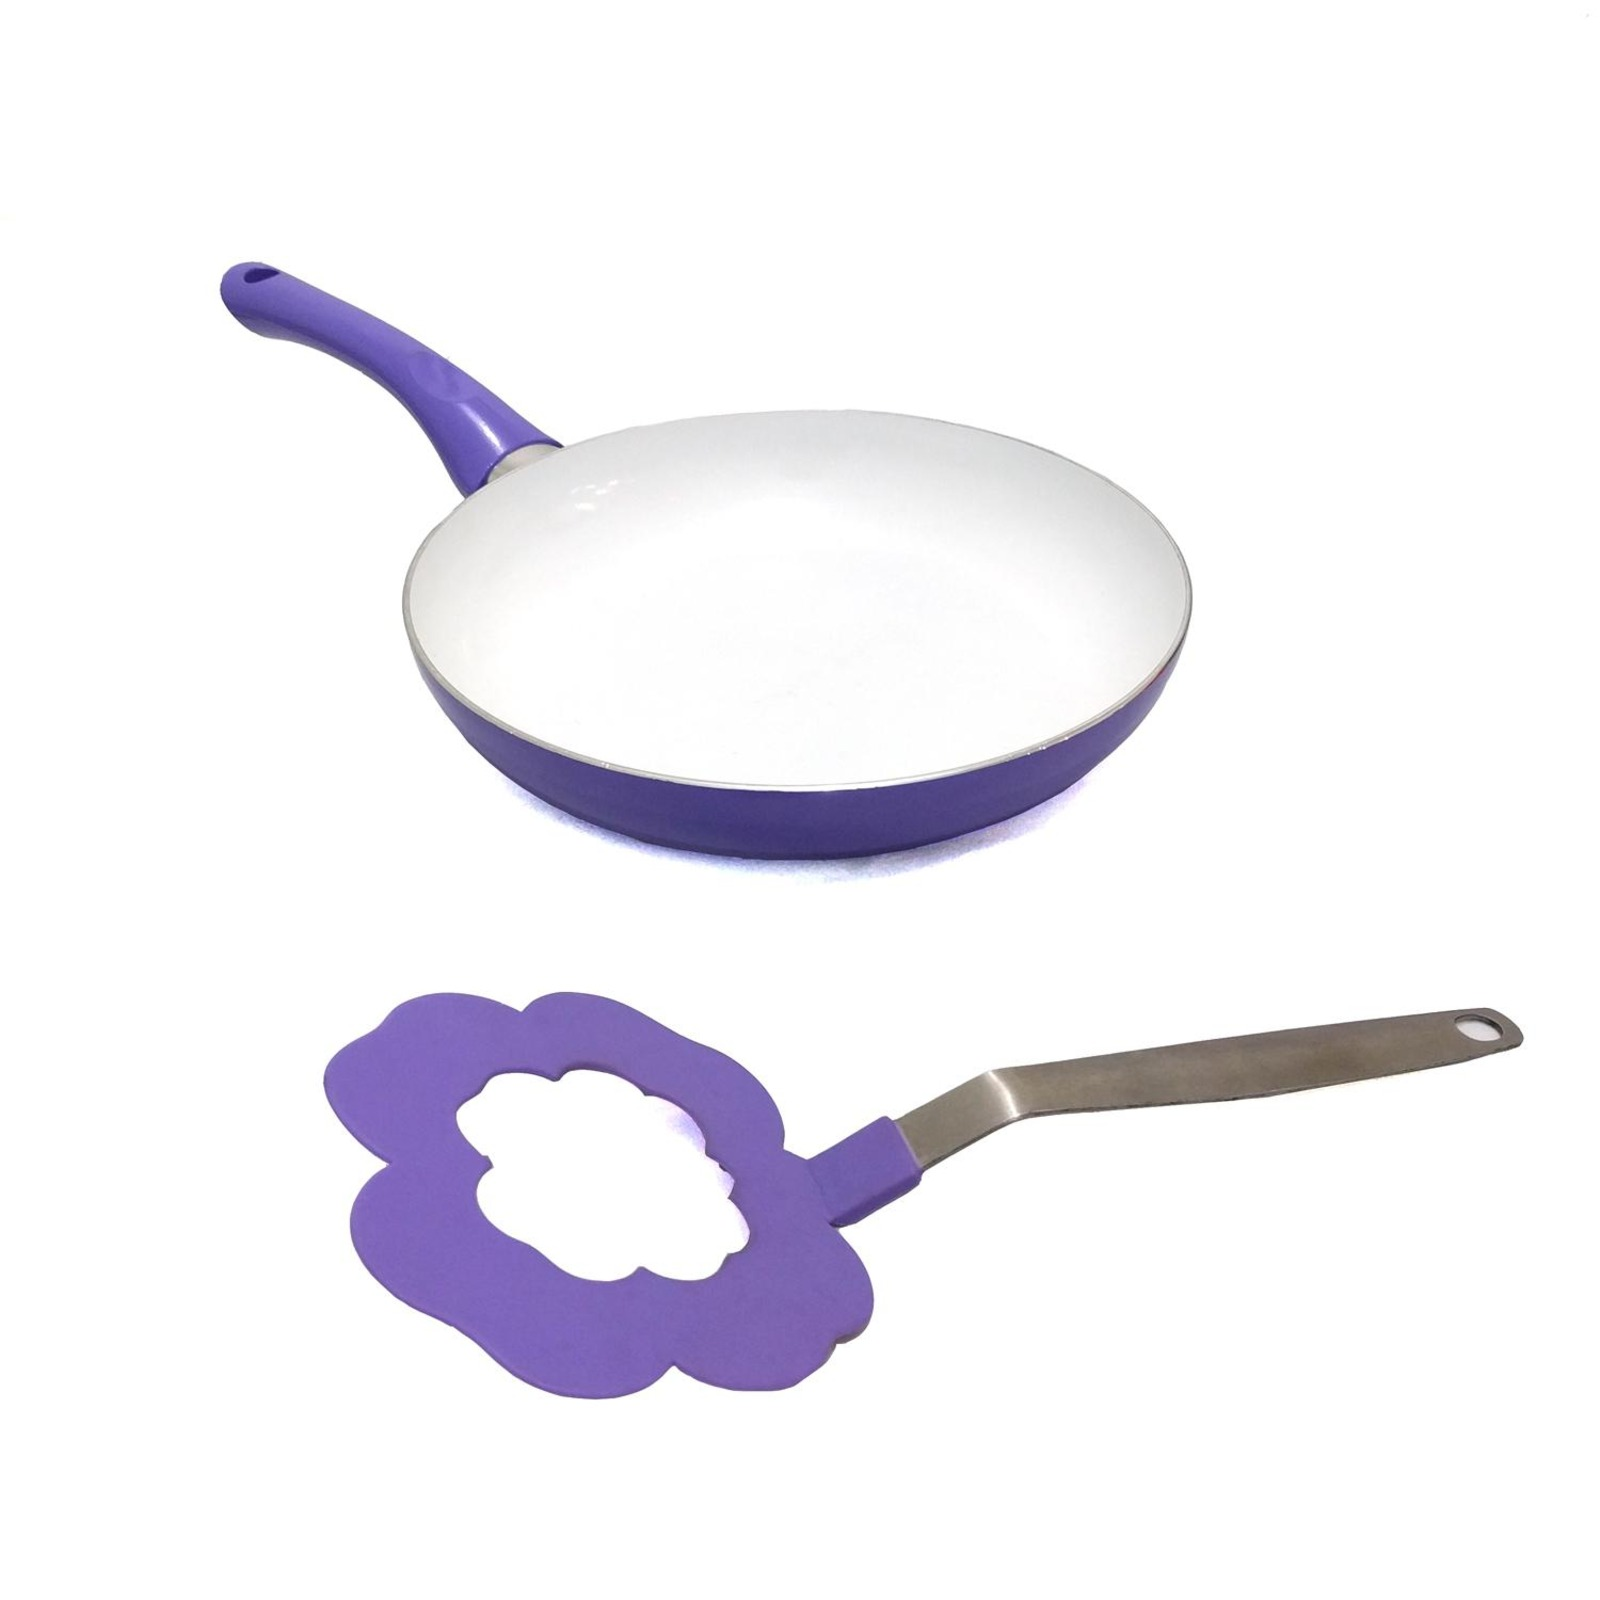 Amark Chef Delight Floral Non-Stick Ceramic Frying Pan